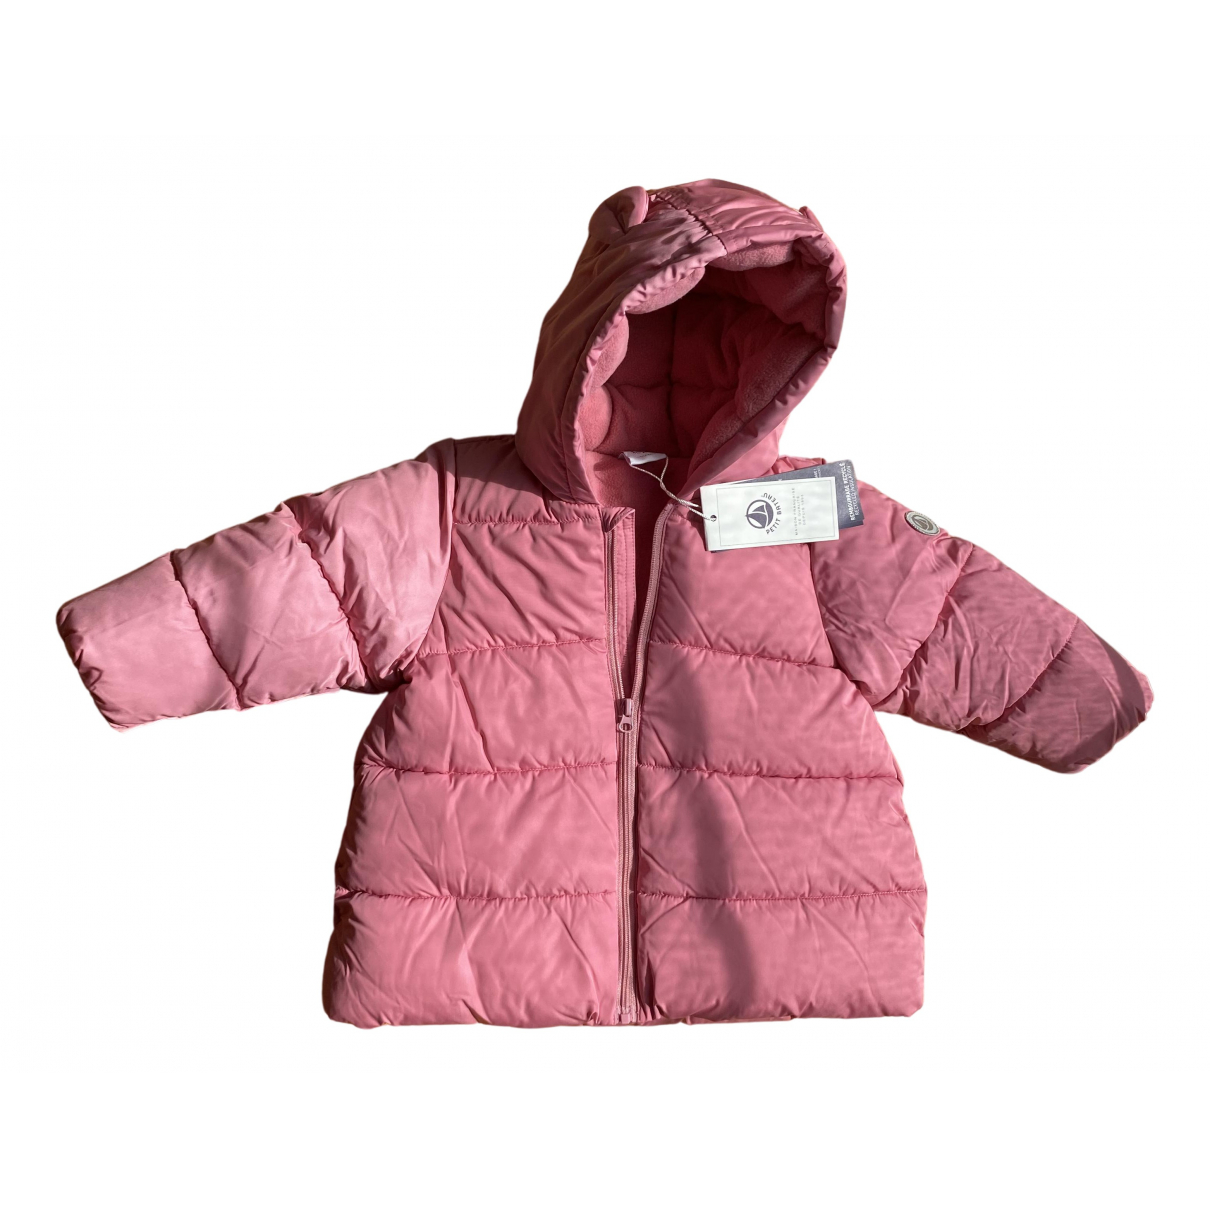 Petit Bateau \N Pink jacket & coat for Kids 12 months - up to 74cm FR